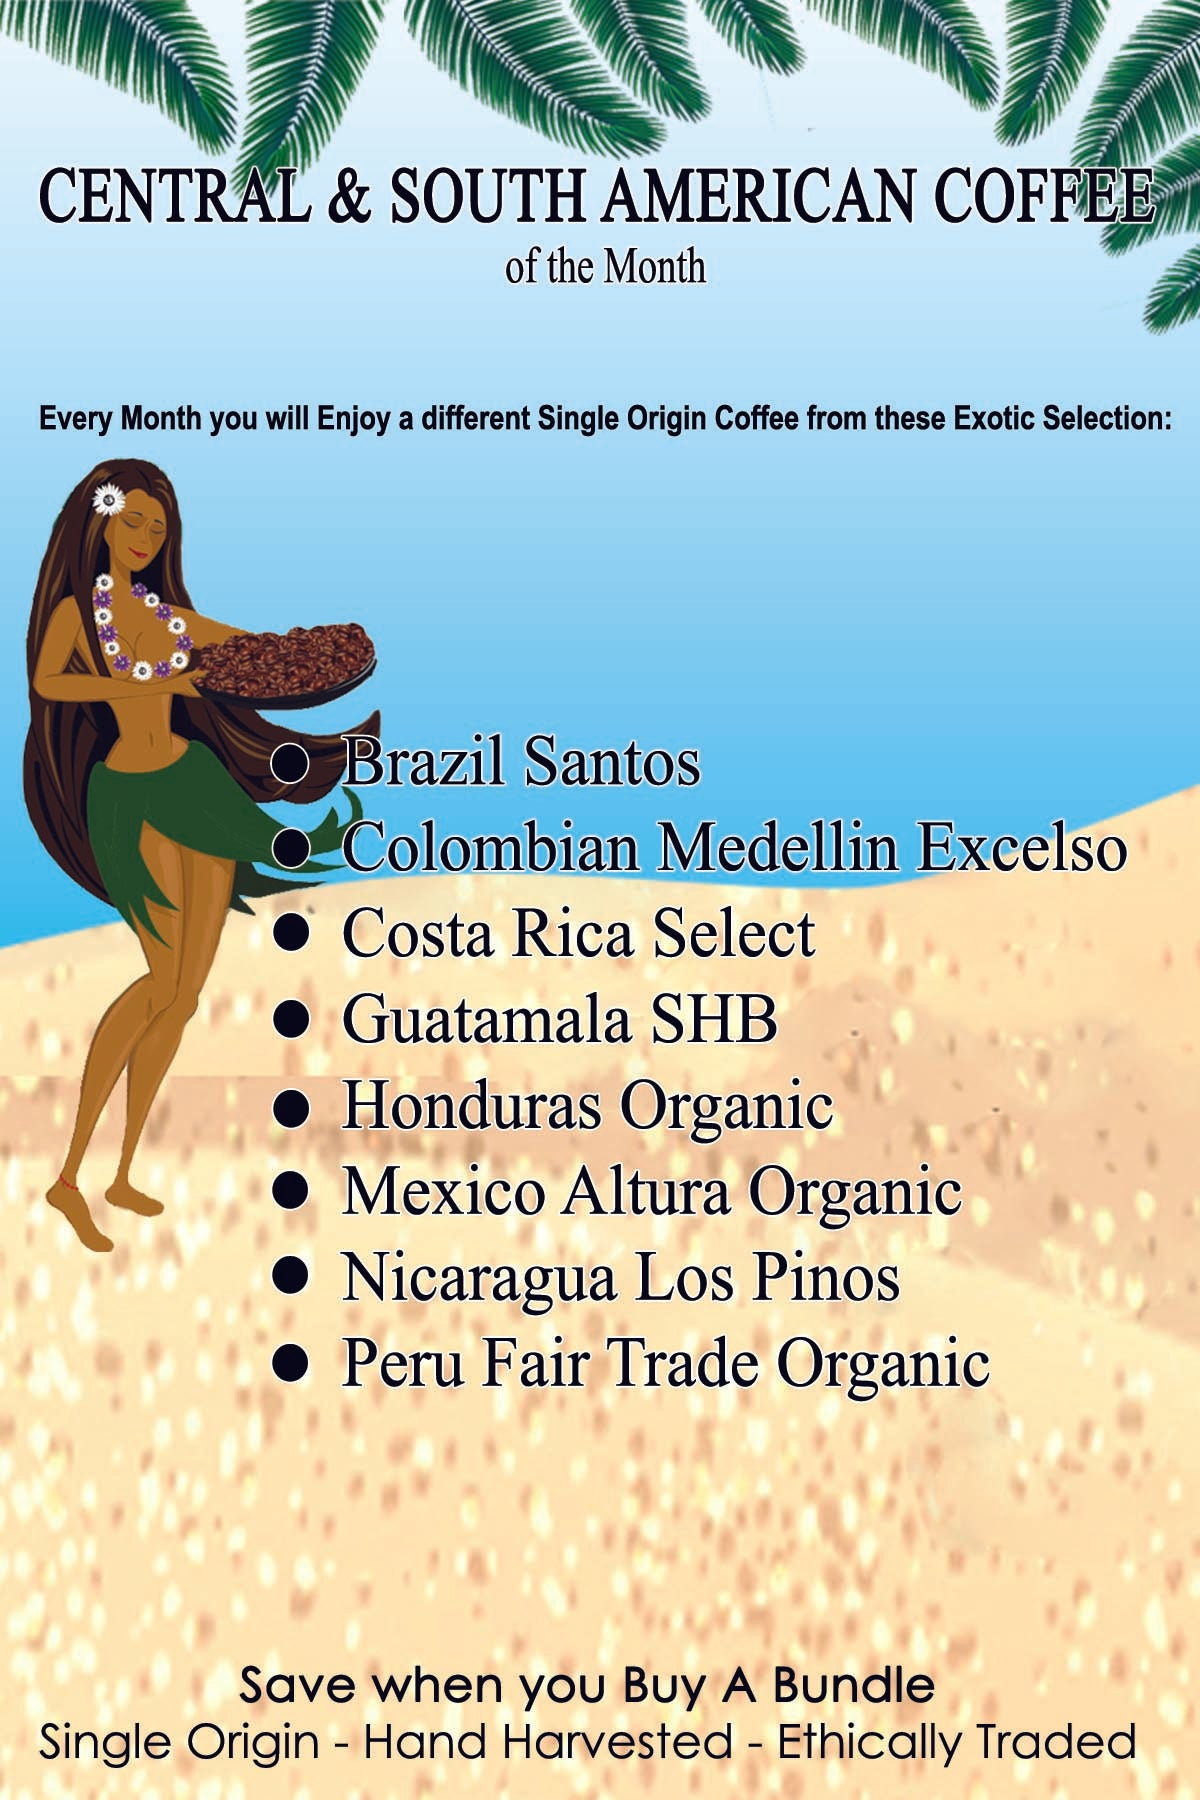 Central & South American Coffee of The Month - Going Native Coffee Club